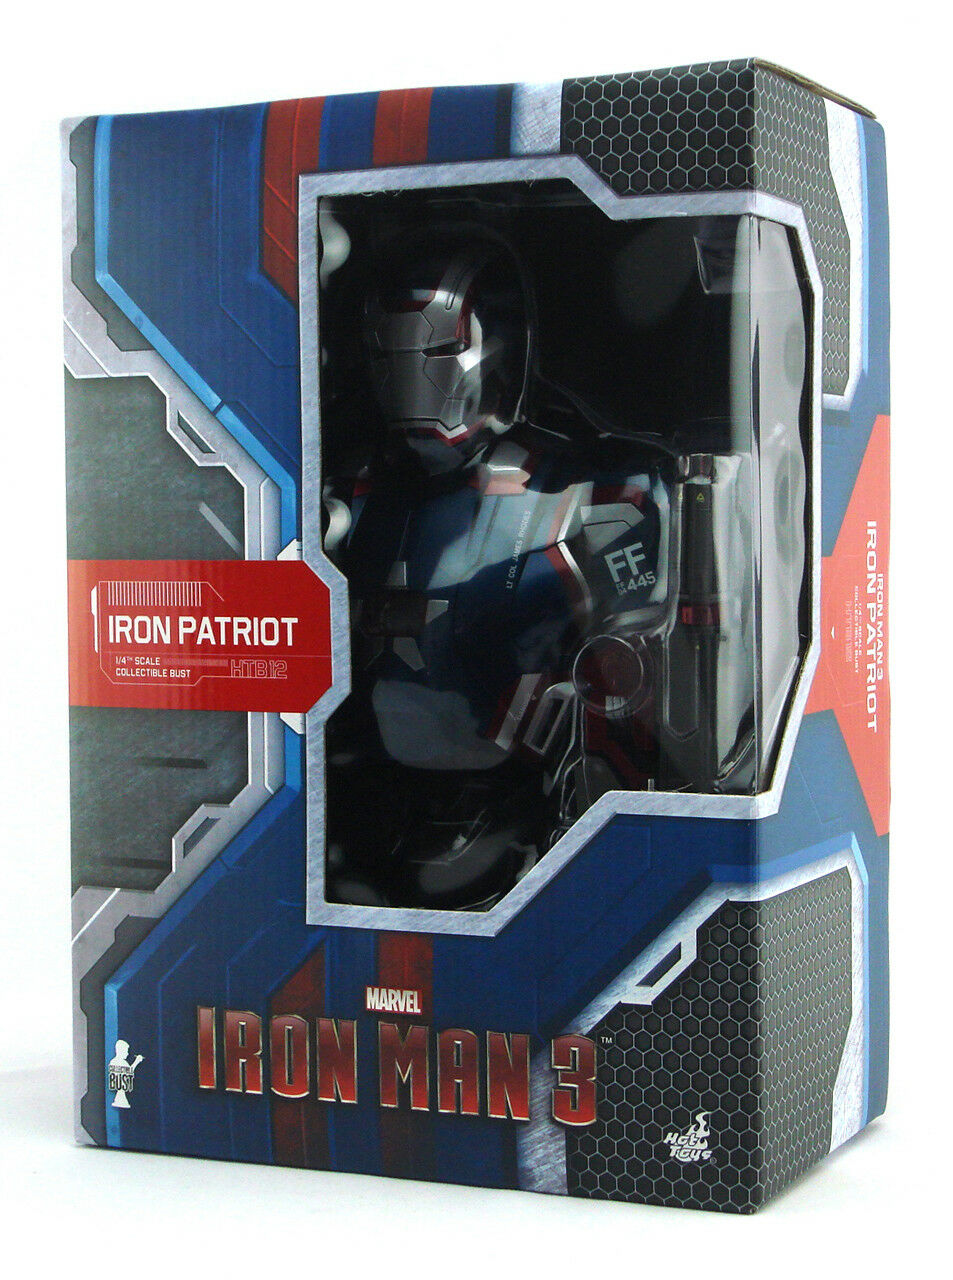 Hot Hot Hot Toys Cosbaby Iron Man Mark III Figure Marvel Universe Avengers New In Box 7ee810